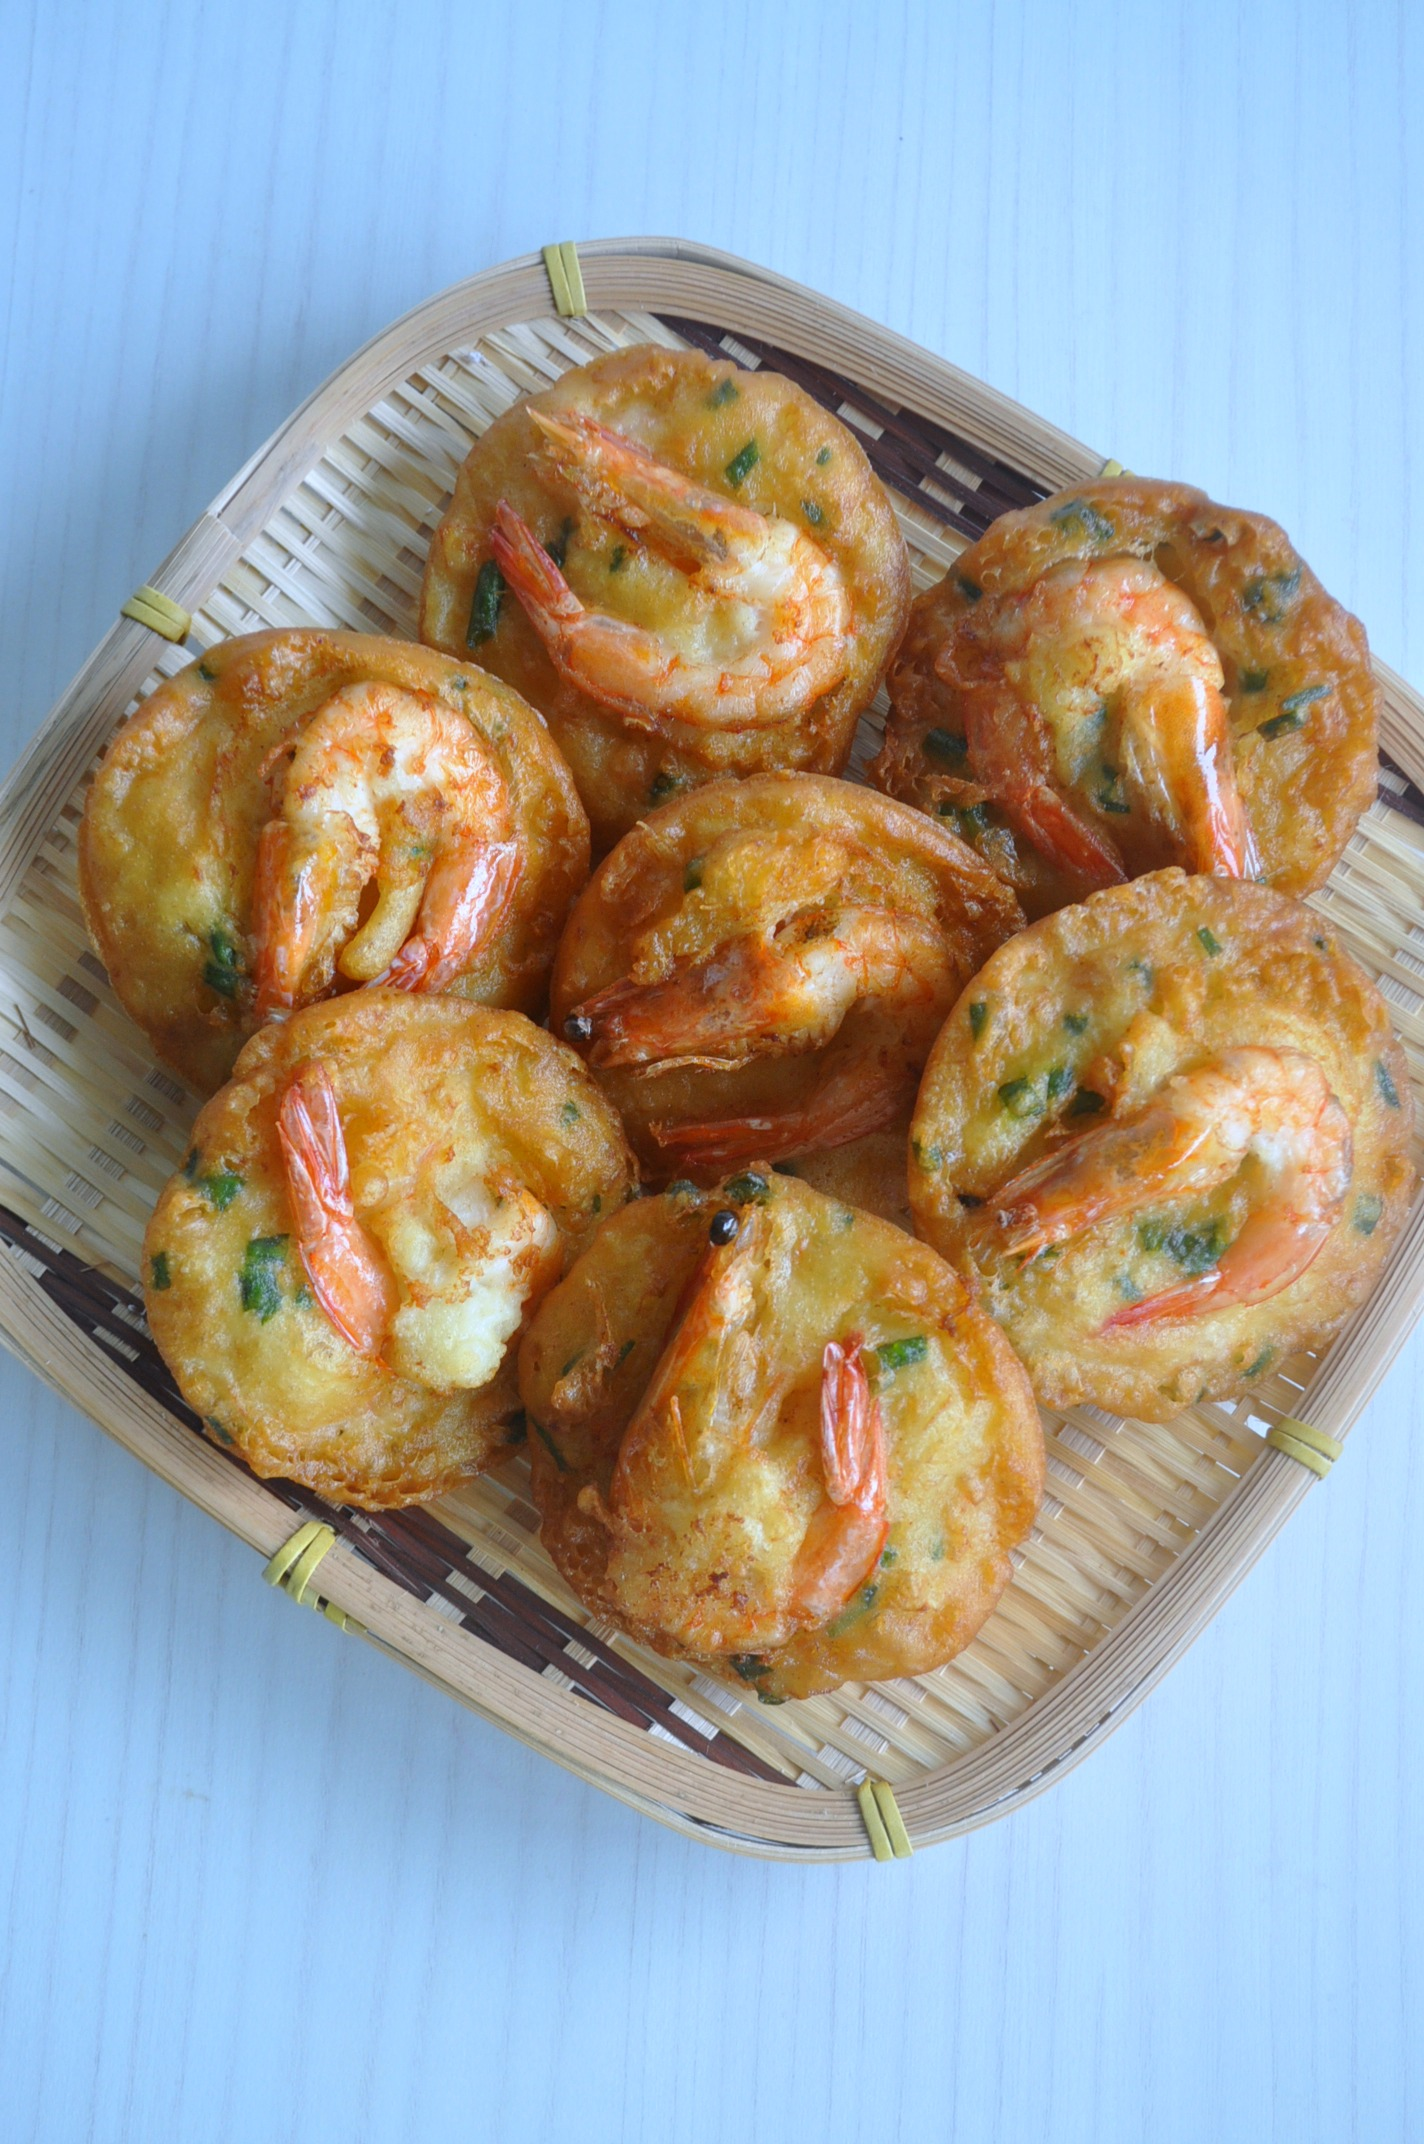 Crispy prawn fritters eat what tonight i am quite a fan of street snacks from local pasar malams to night markets when i travel i never failed to try out the various kinds of street snacks forumfinder Gallery